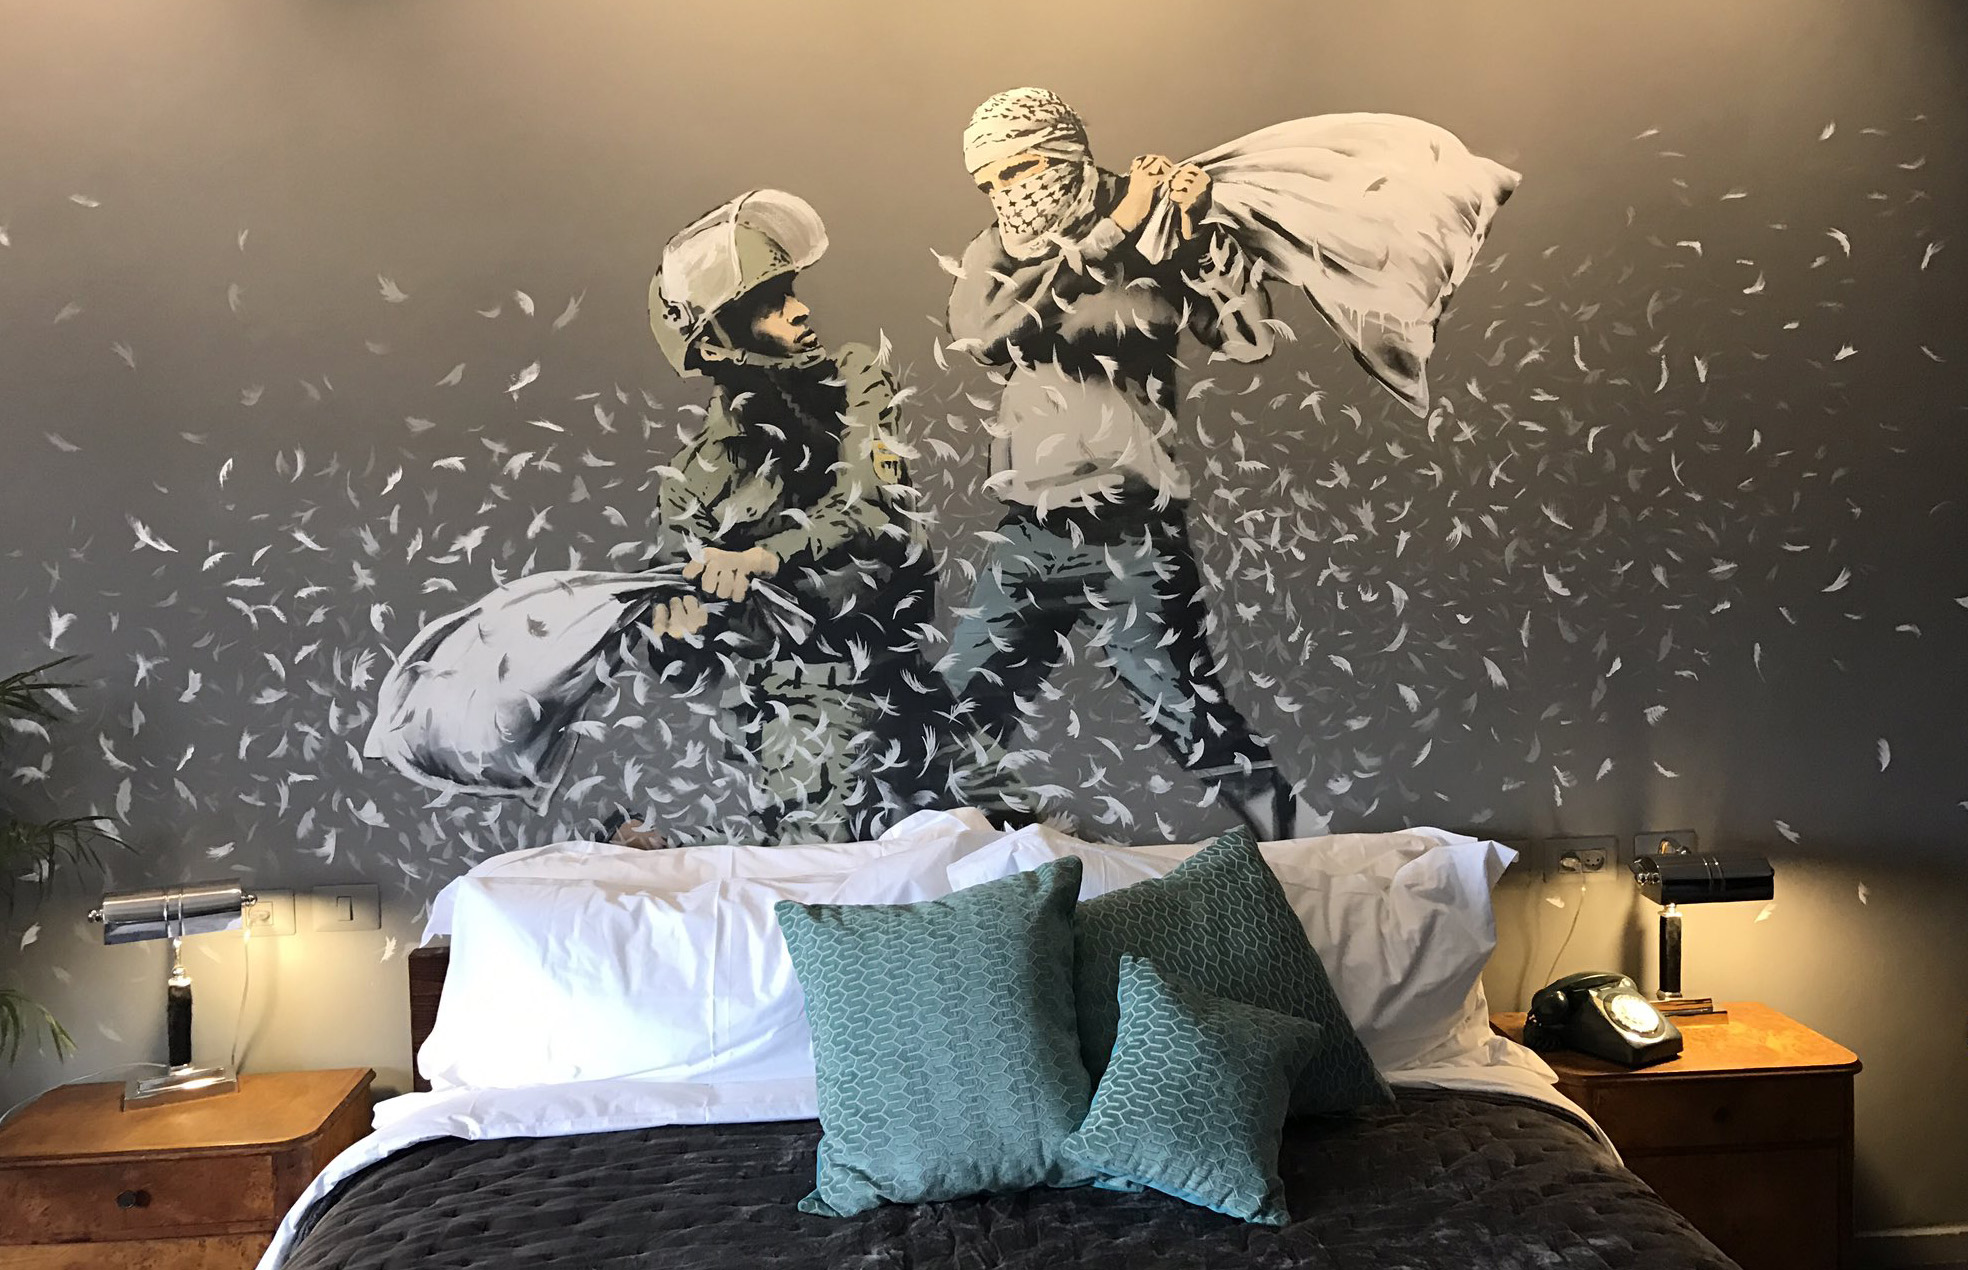 The Walled Off Hotel by Banksy | Banksy hotel in Palestine & Israel | West Bank hotel